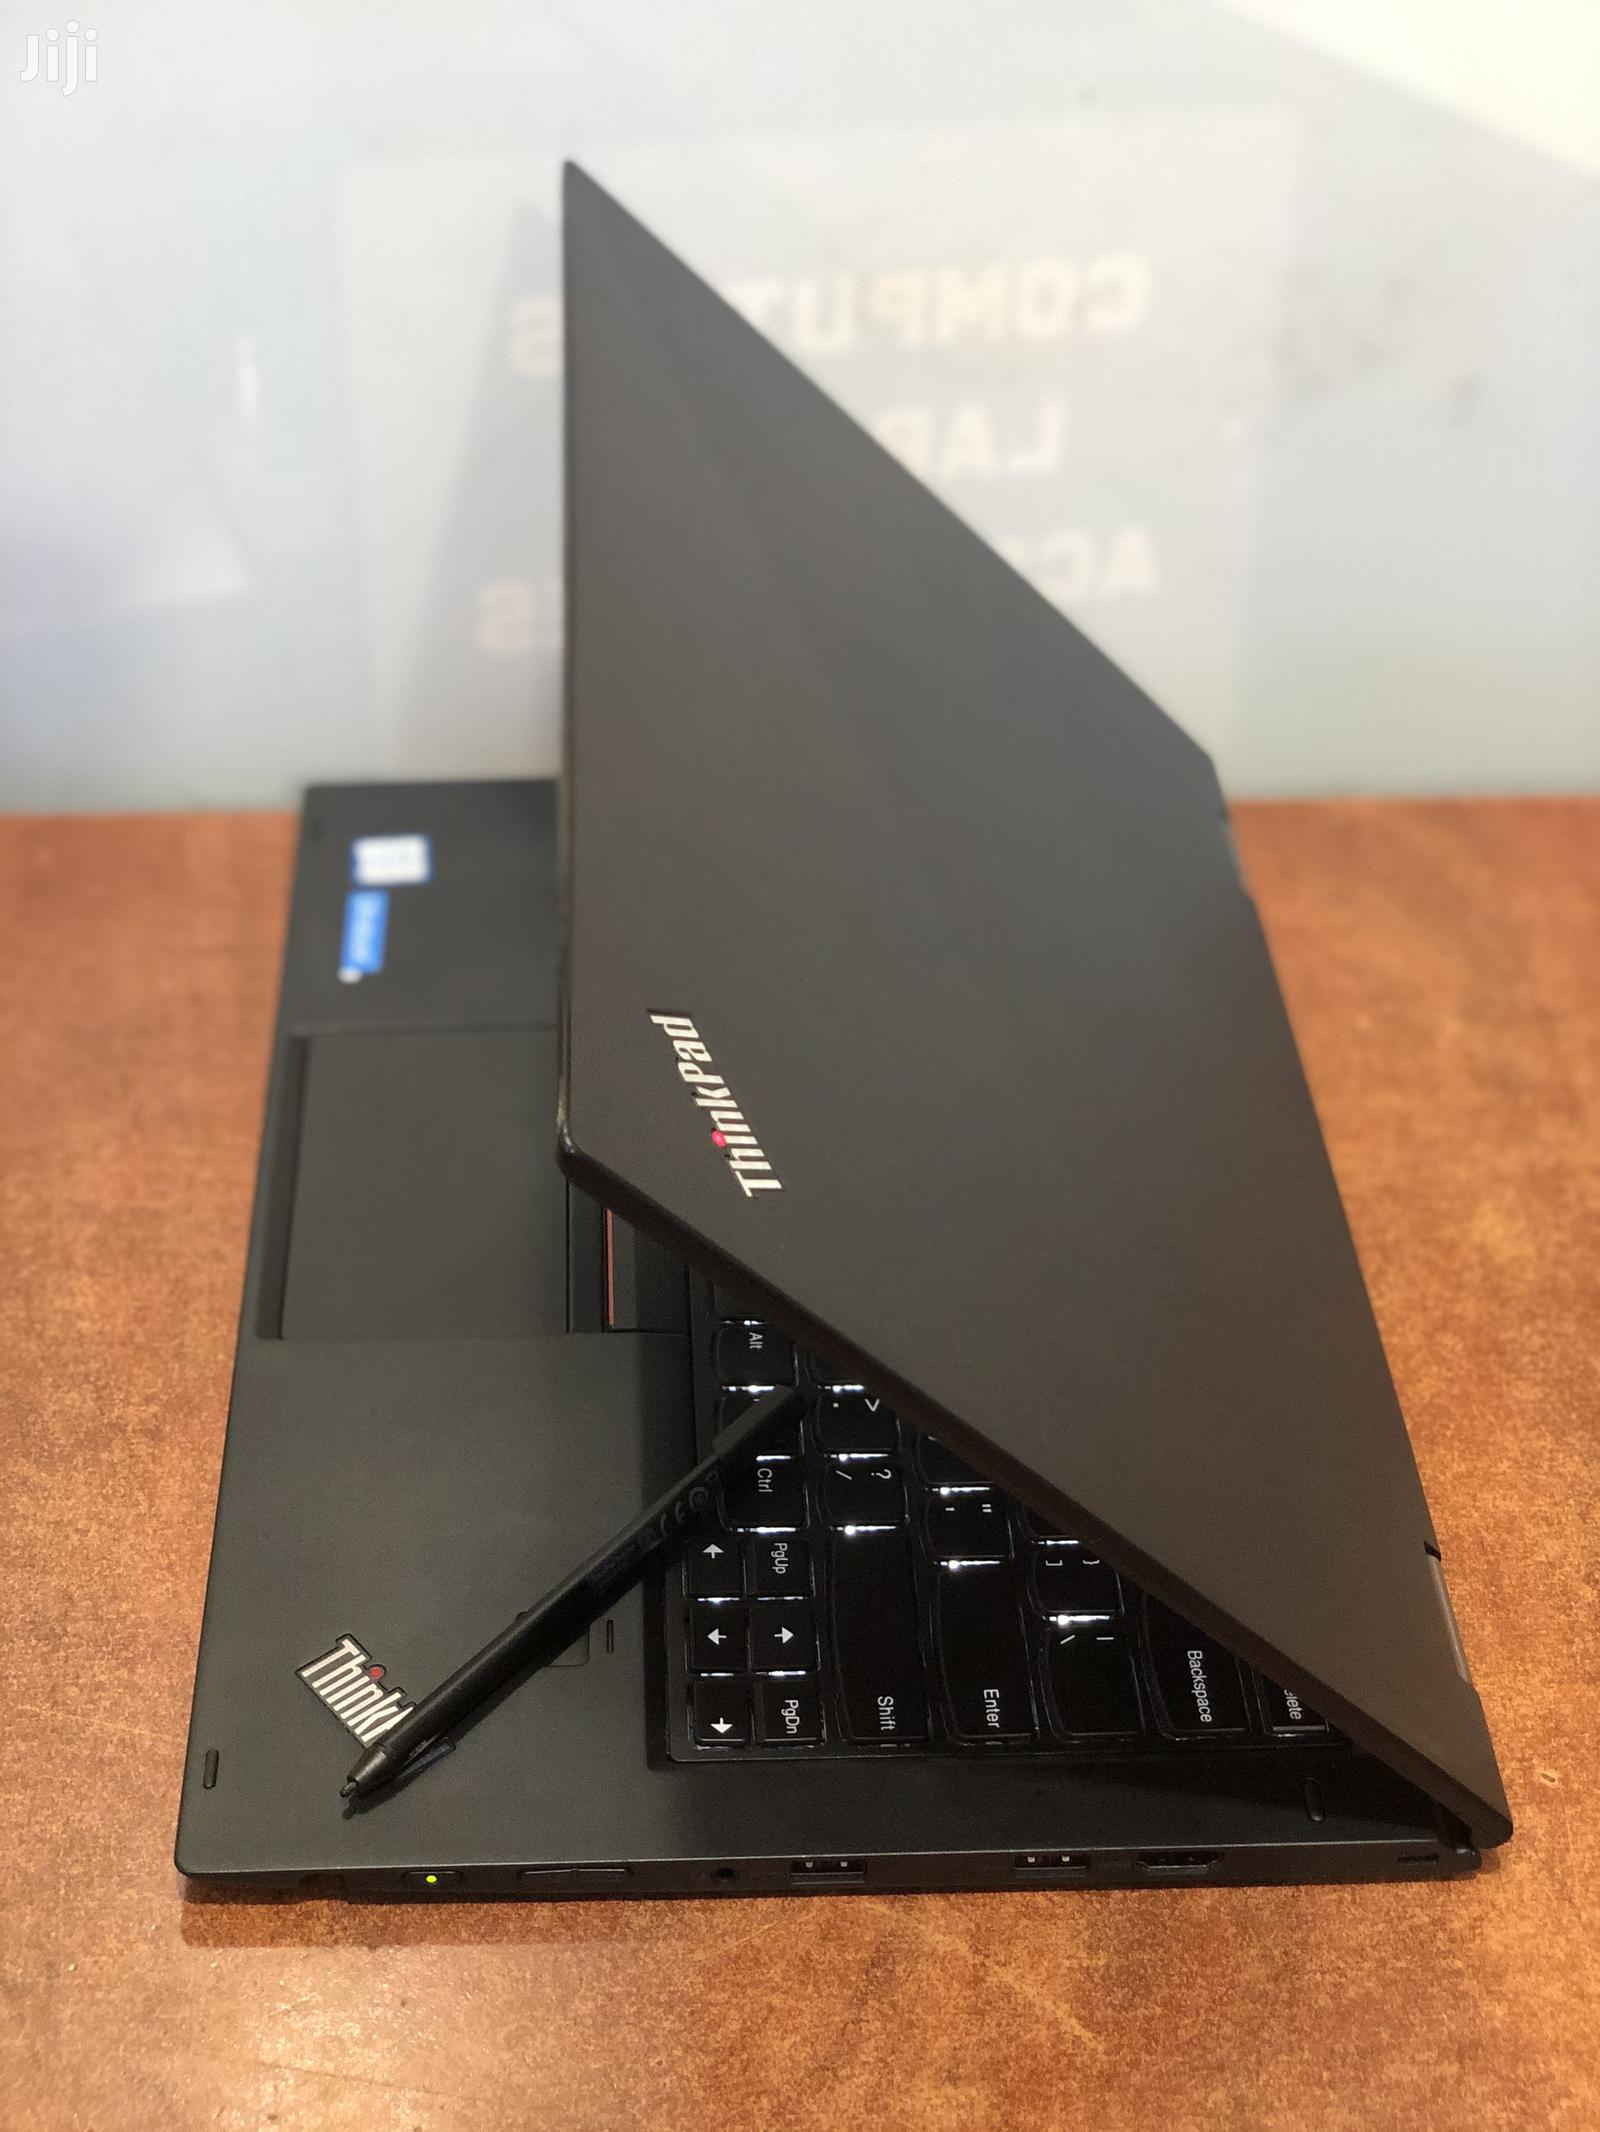 New Laptop Lenovo ThinkPad Yoga 16GB Intel Core i7 SSD 512GB | Laptops & Computers for sale in Kampala, Central Region, Uganda